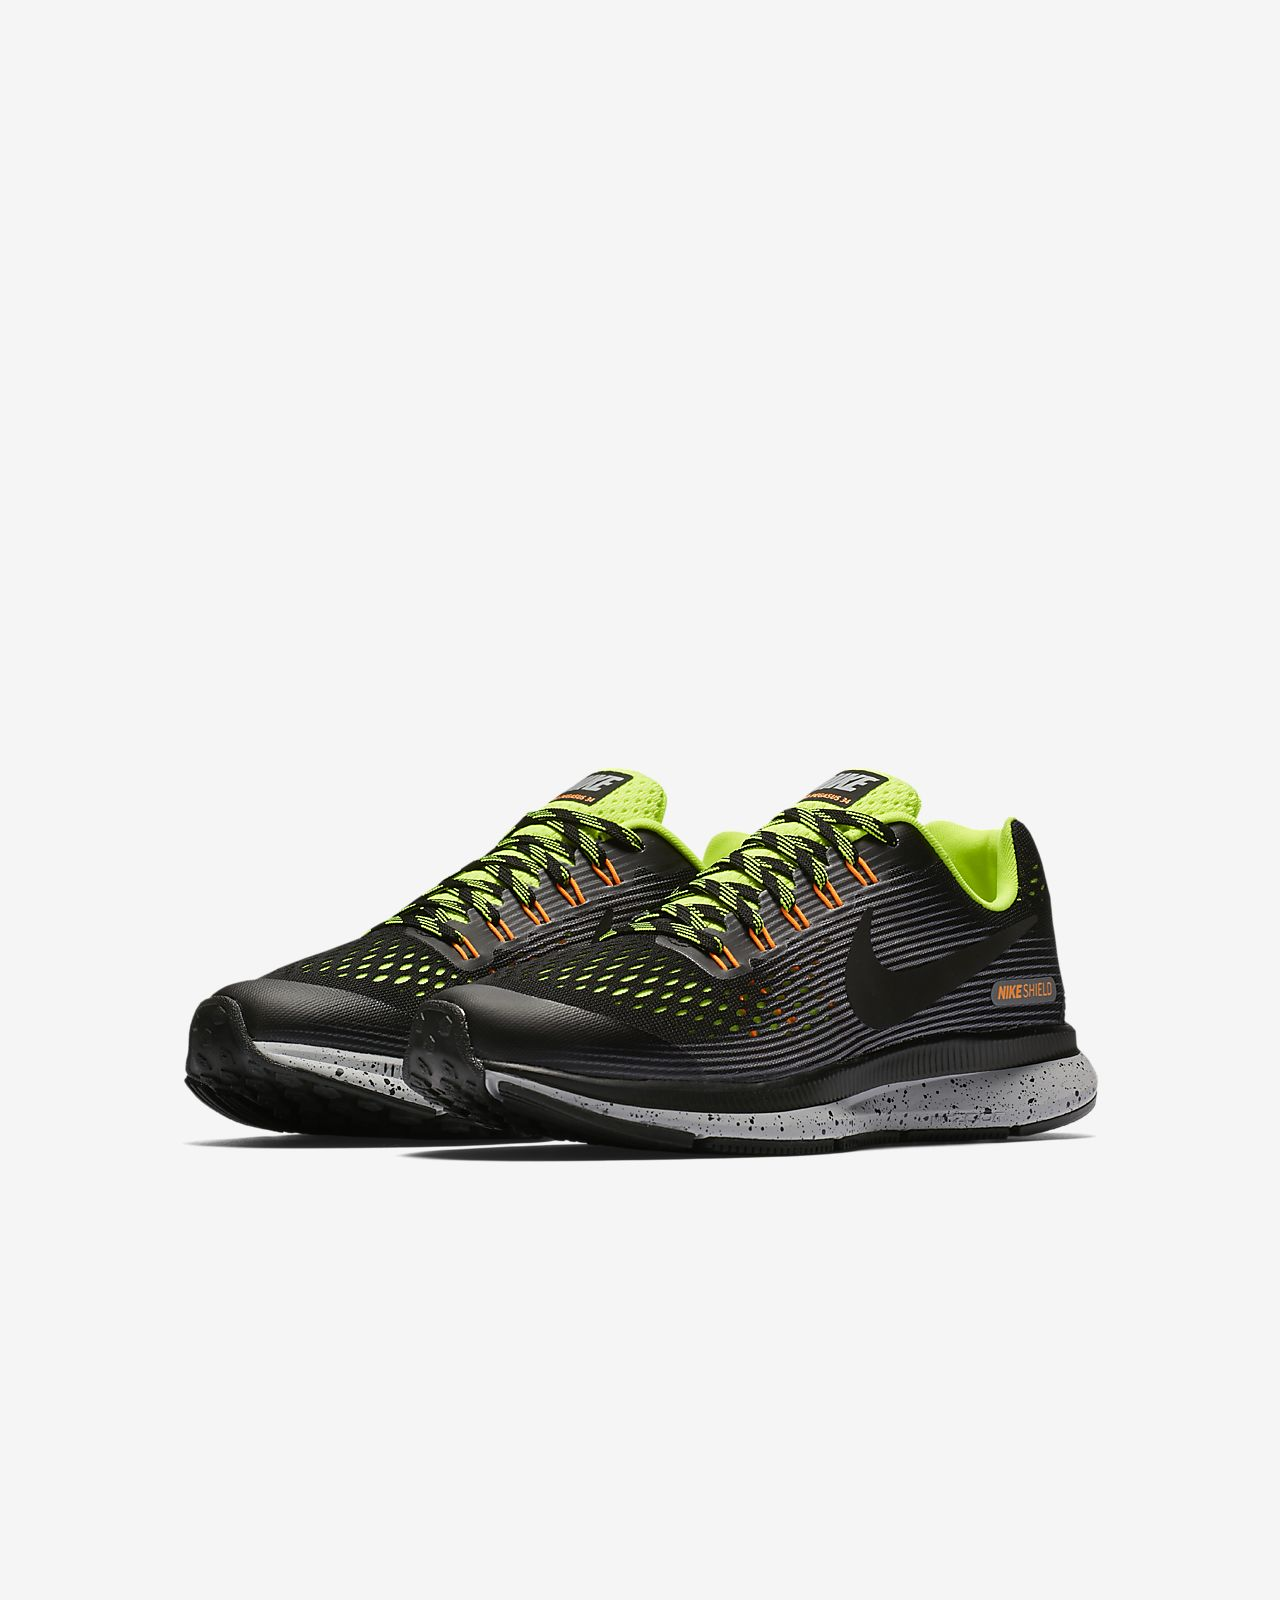 nike pegasus 28 mens new zealand nz